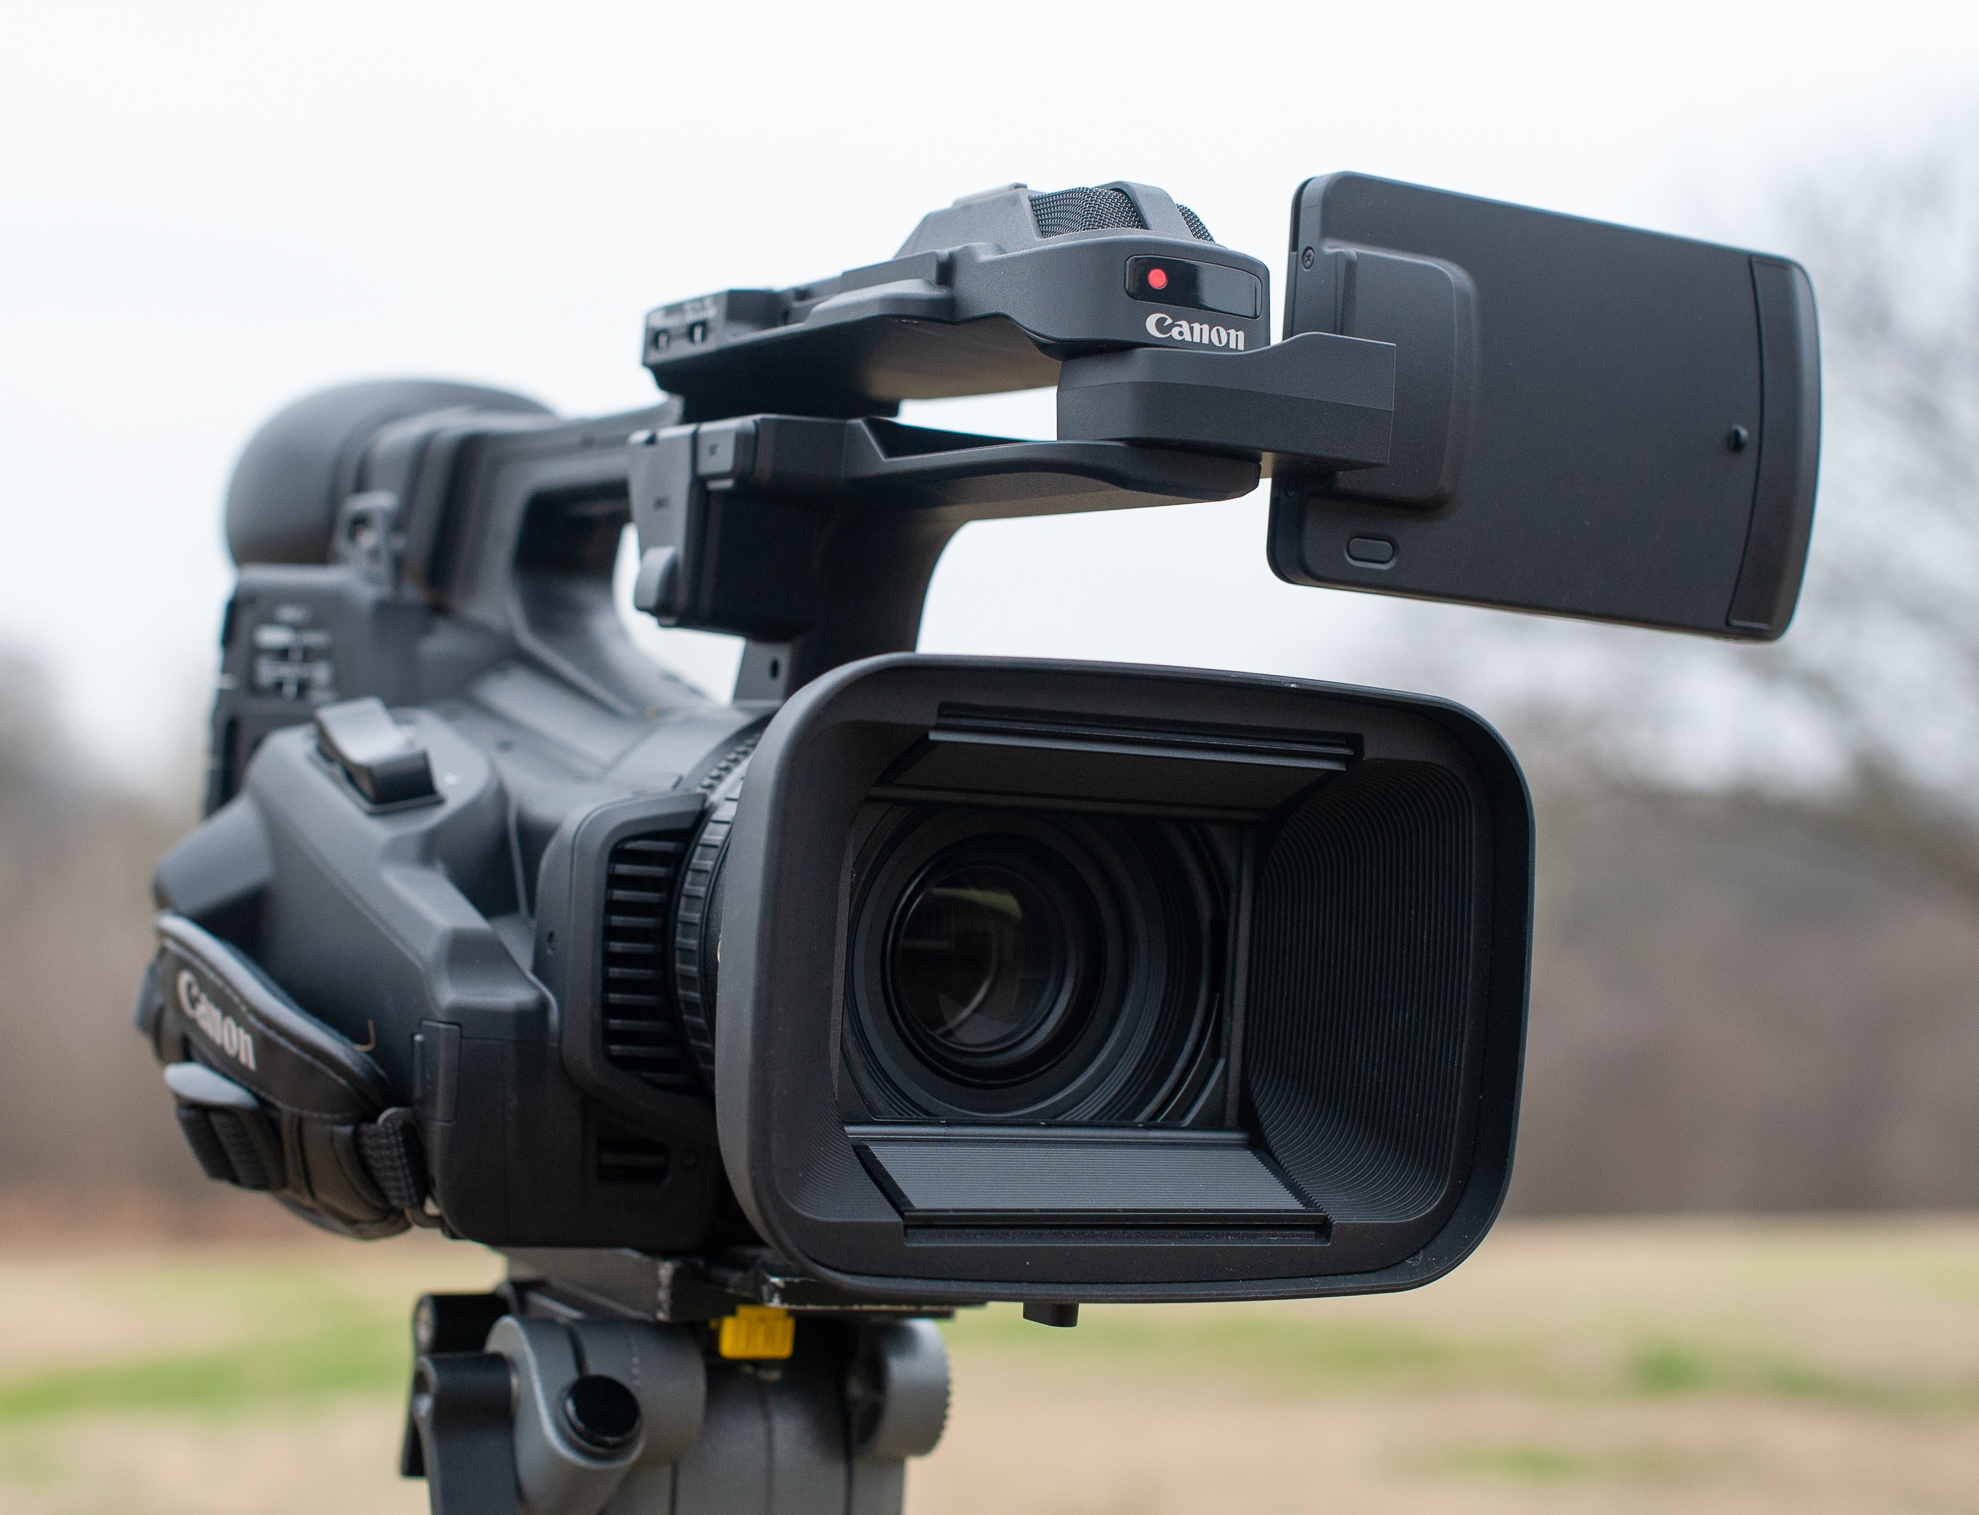 Review: The Canon XF705 4K Camcorder by Brian Hallett